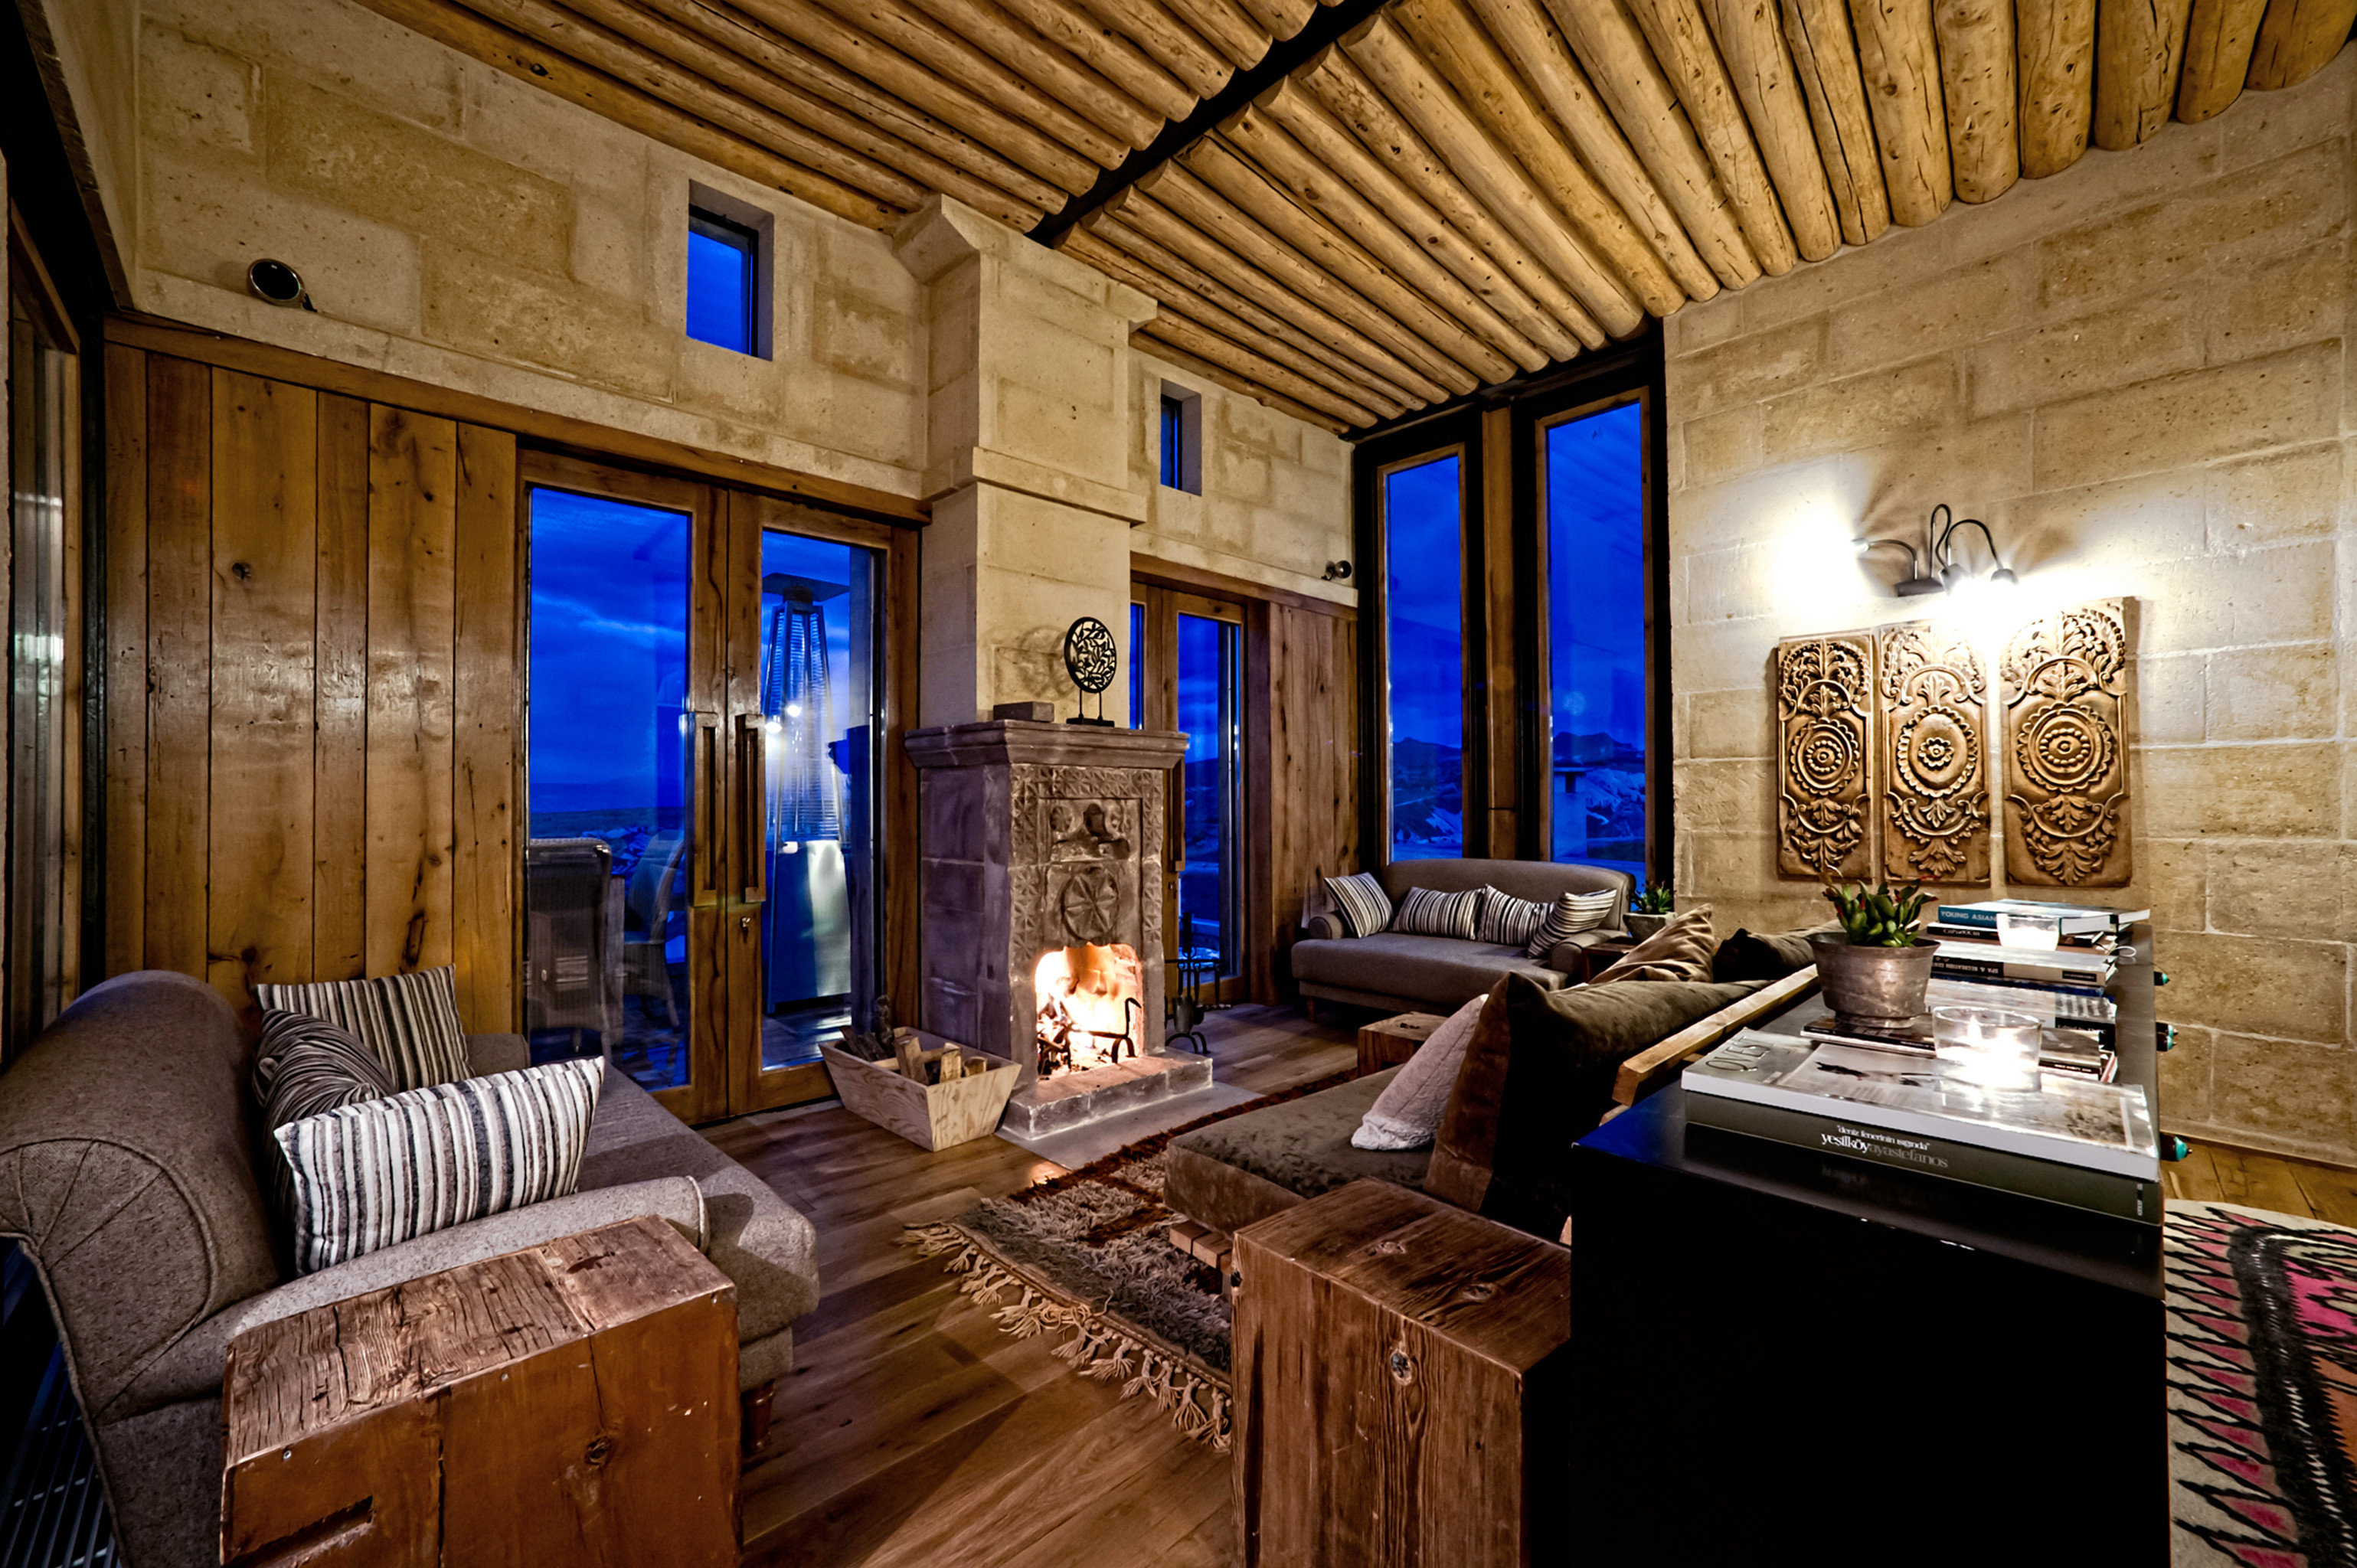 Eco Luxury Resort Rustic Scenic views property house building home living room mansion cottage lighting log cabin farmhouse